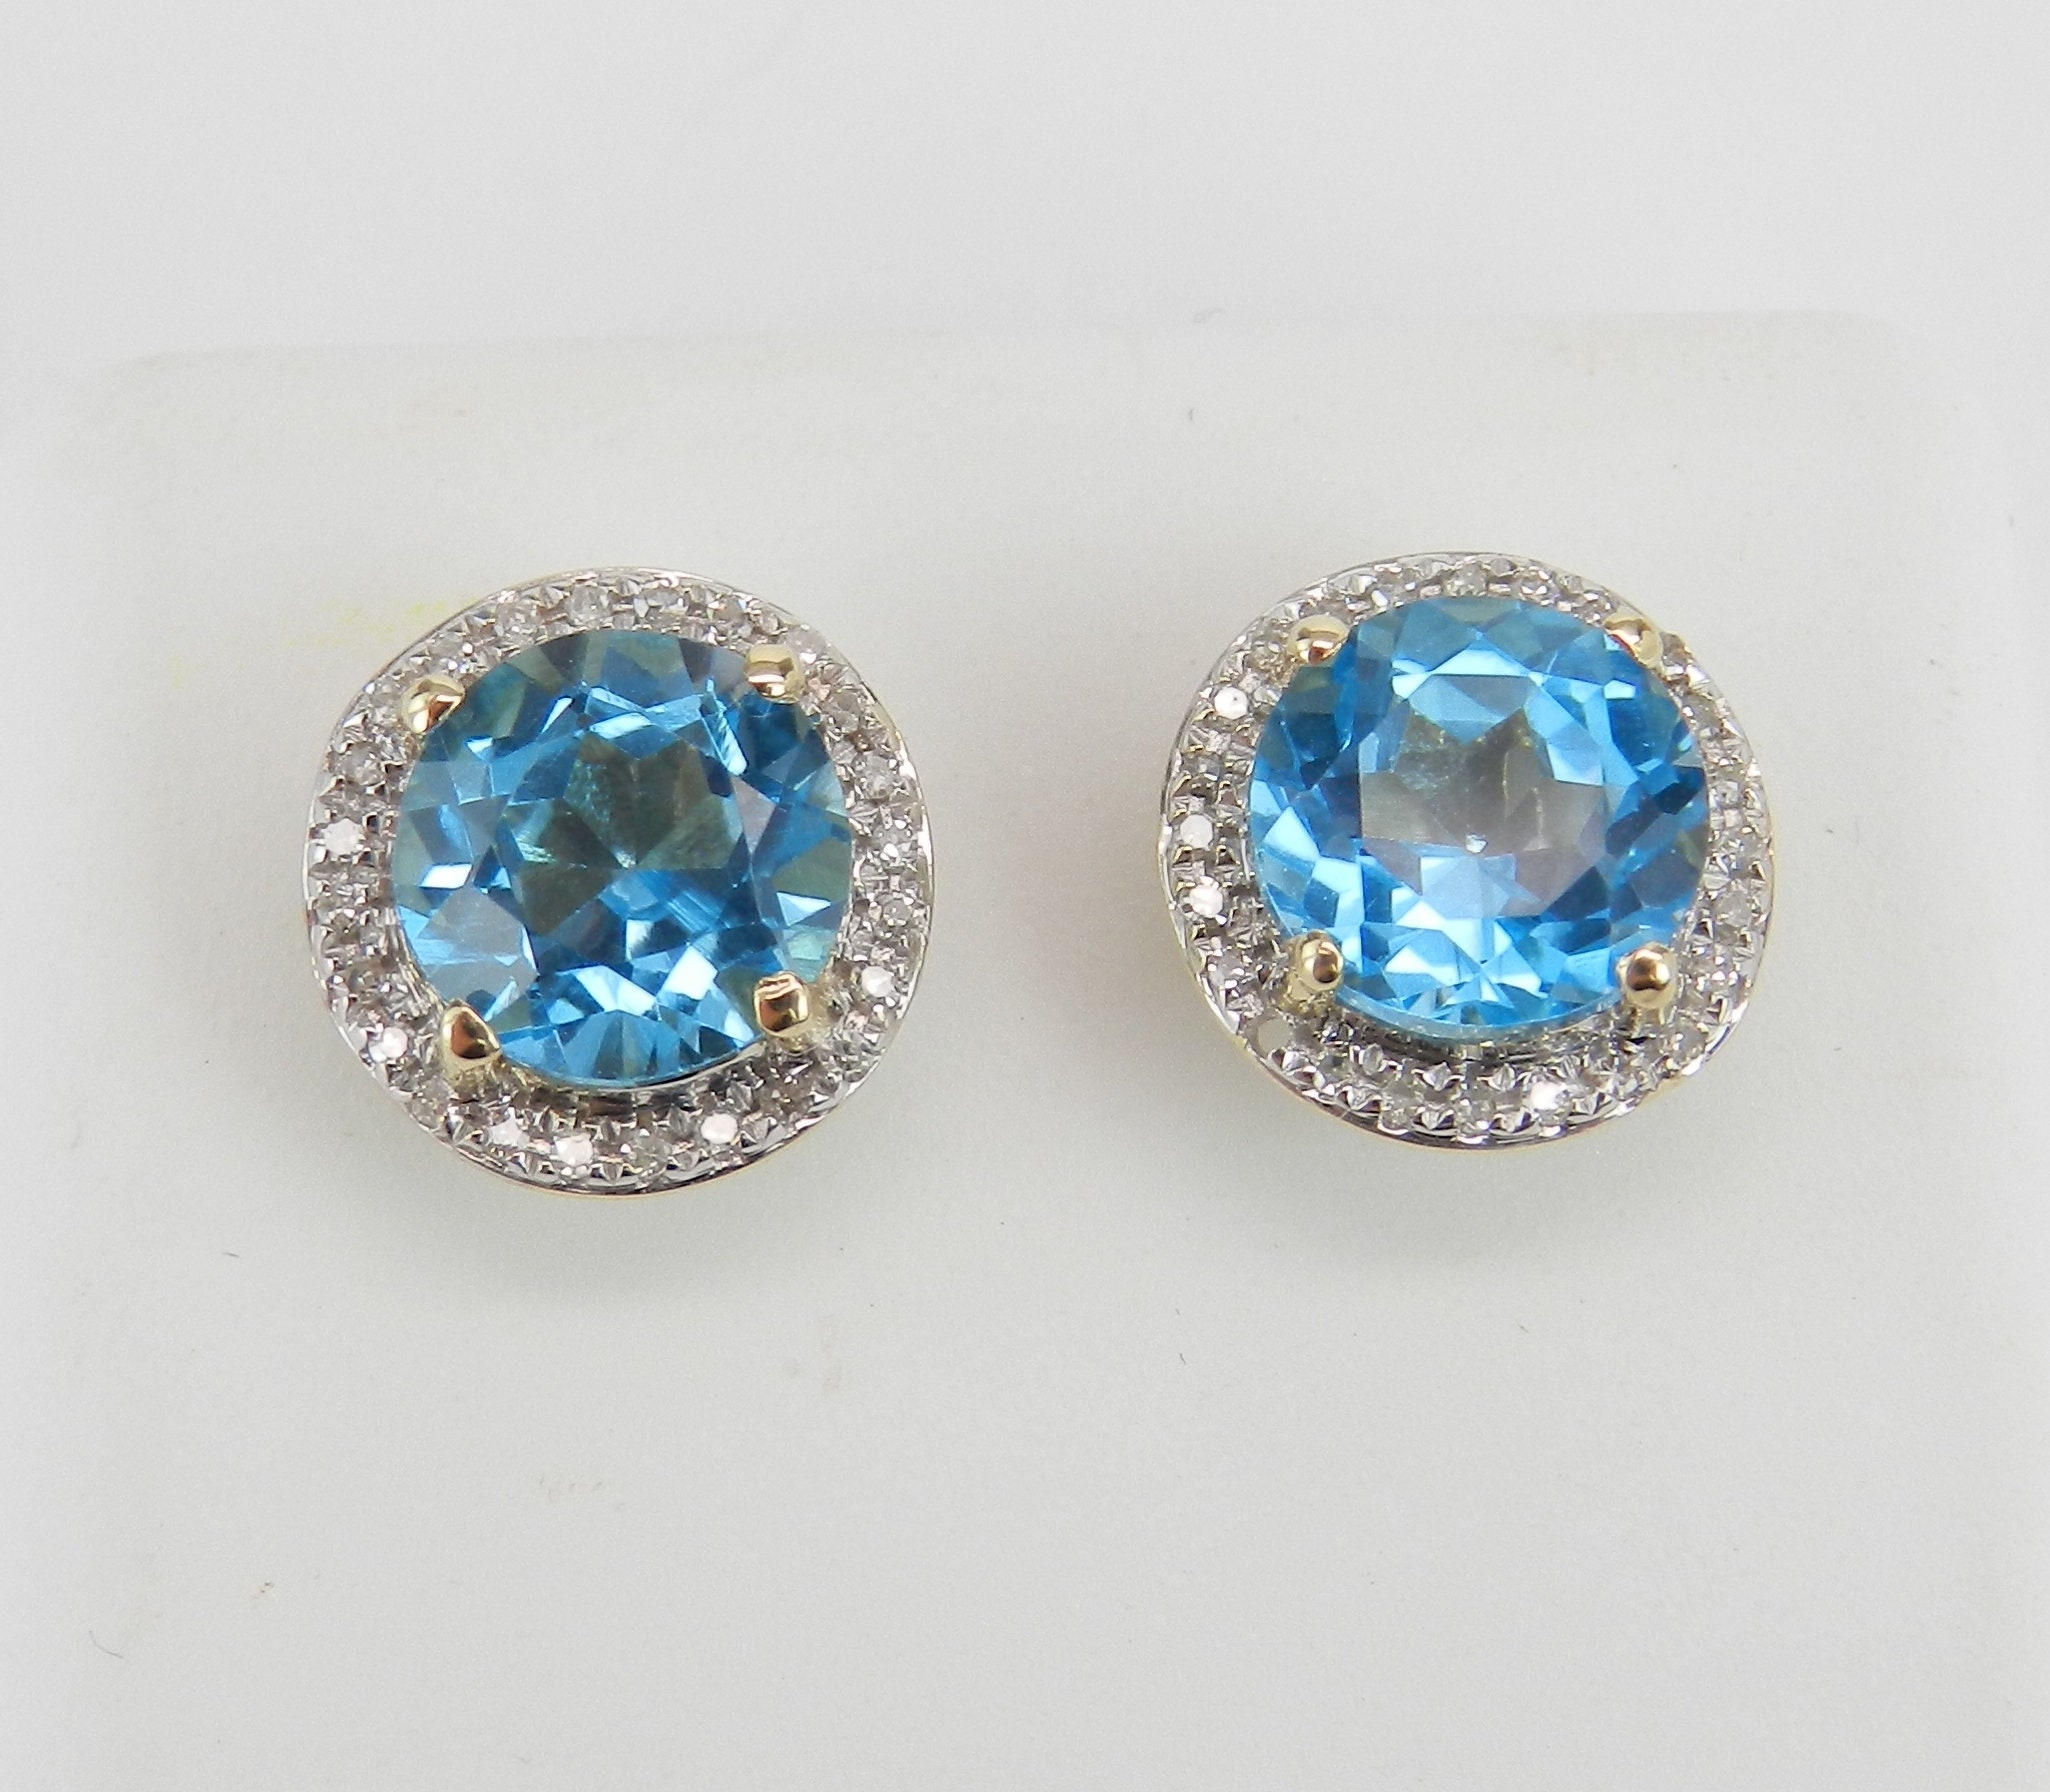 9c4d6fd29 Blue Topaz and Diamond Stud Earrings Halo Studs 14K Yellow Gold ...